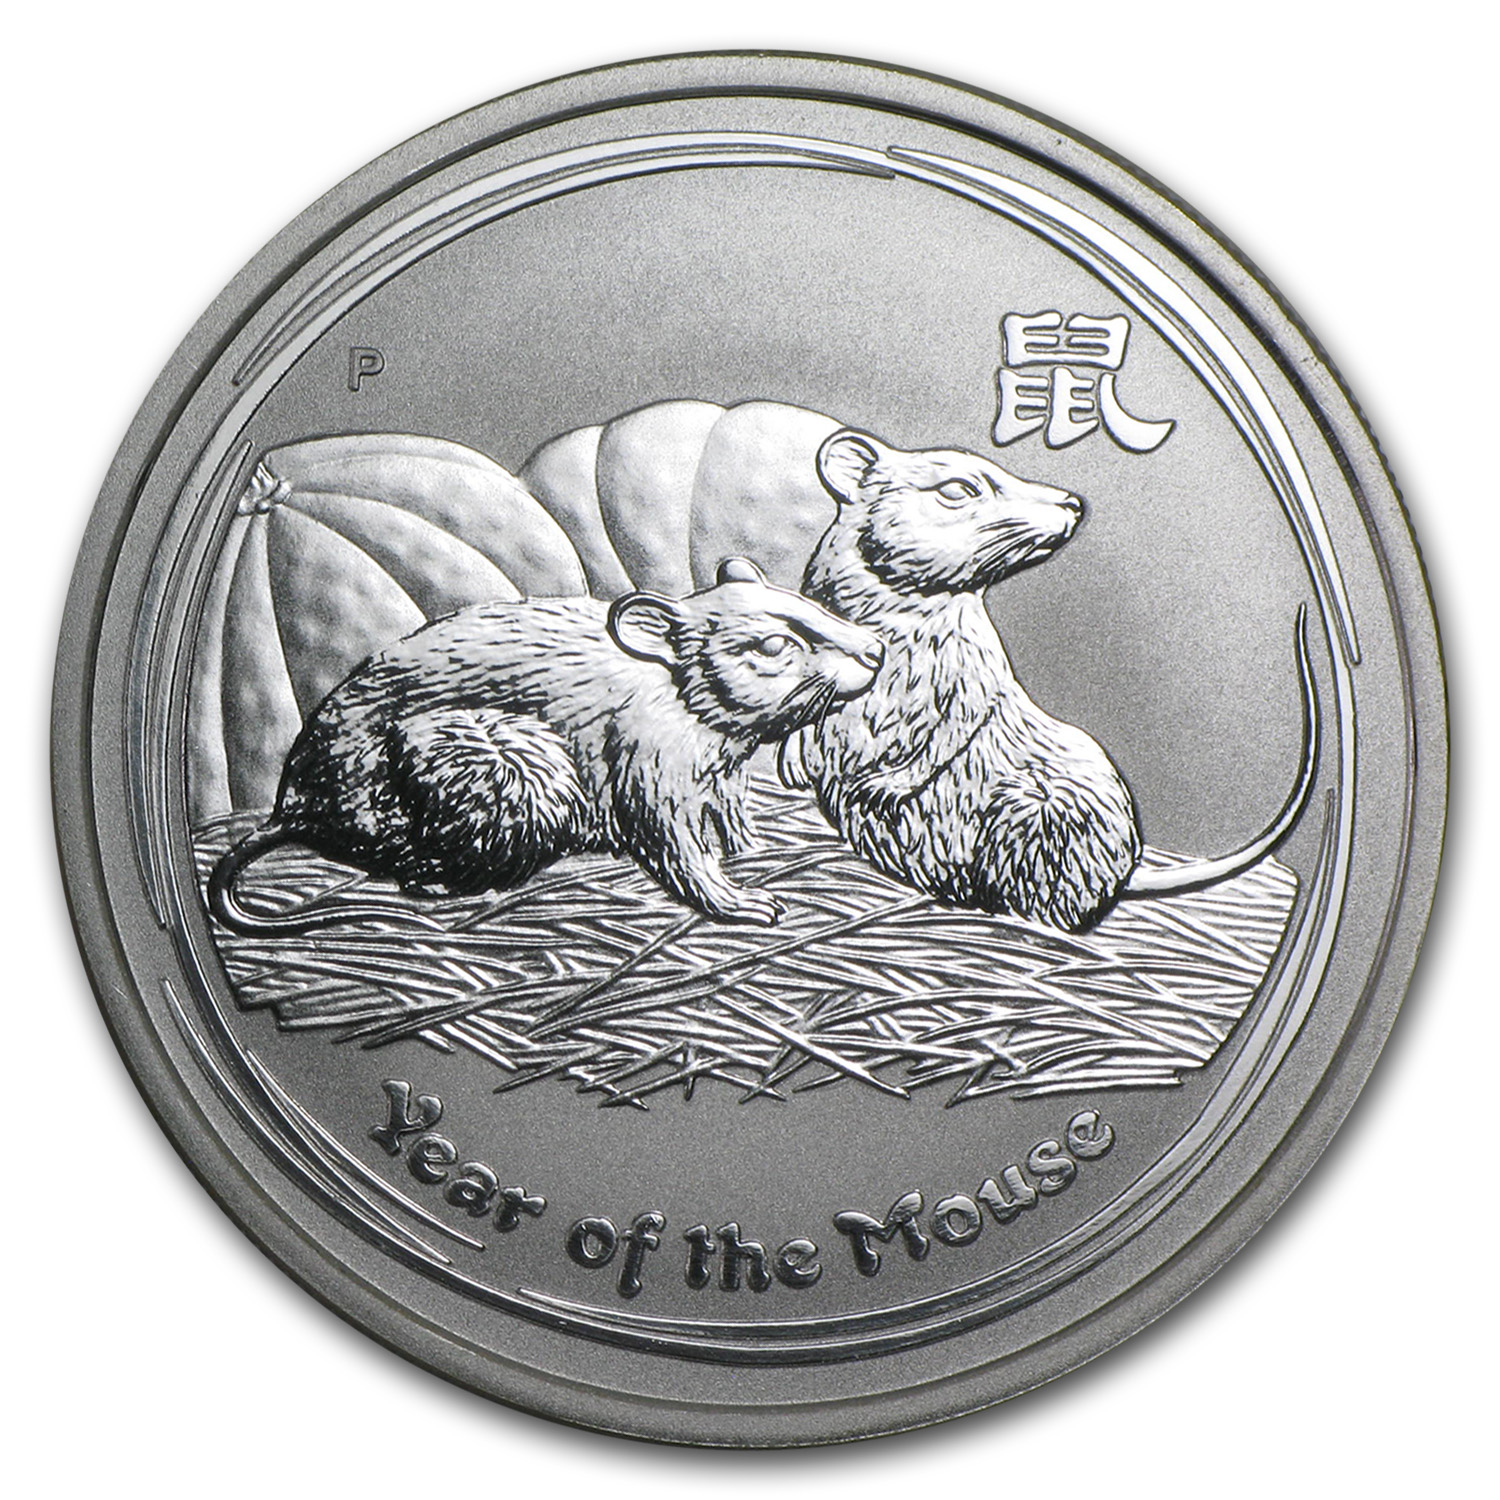 2008 Australia 1/2 oz Silver Year of the Mouse BU (Series II)